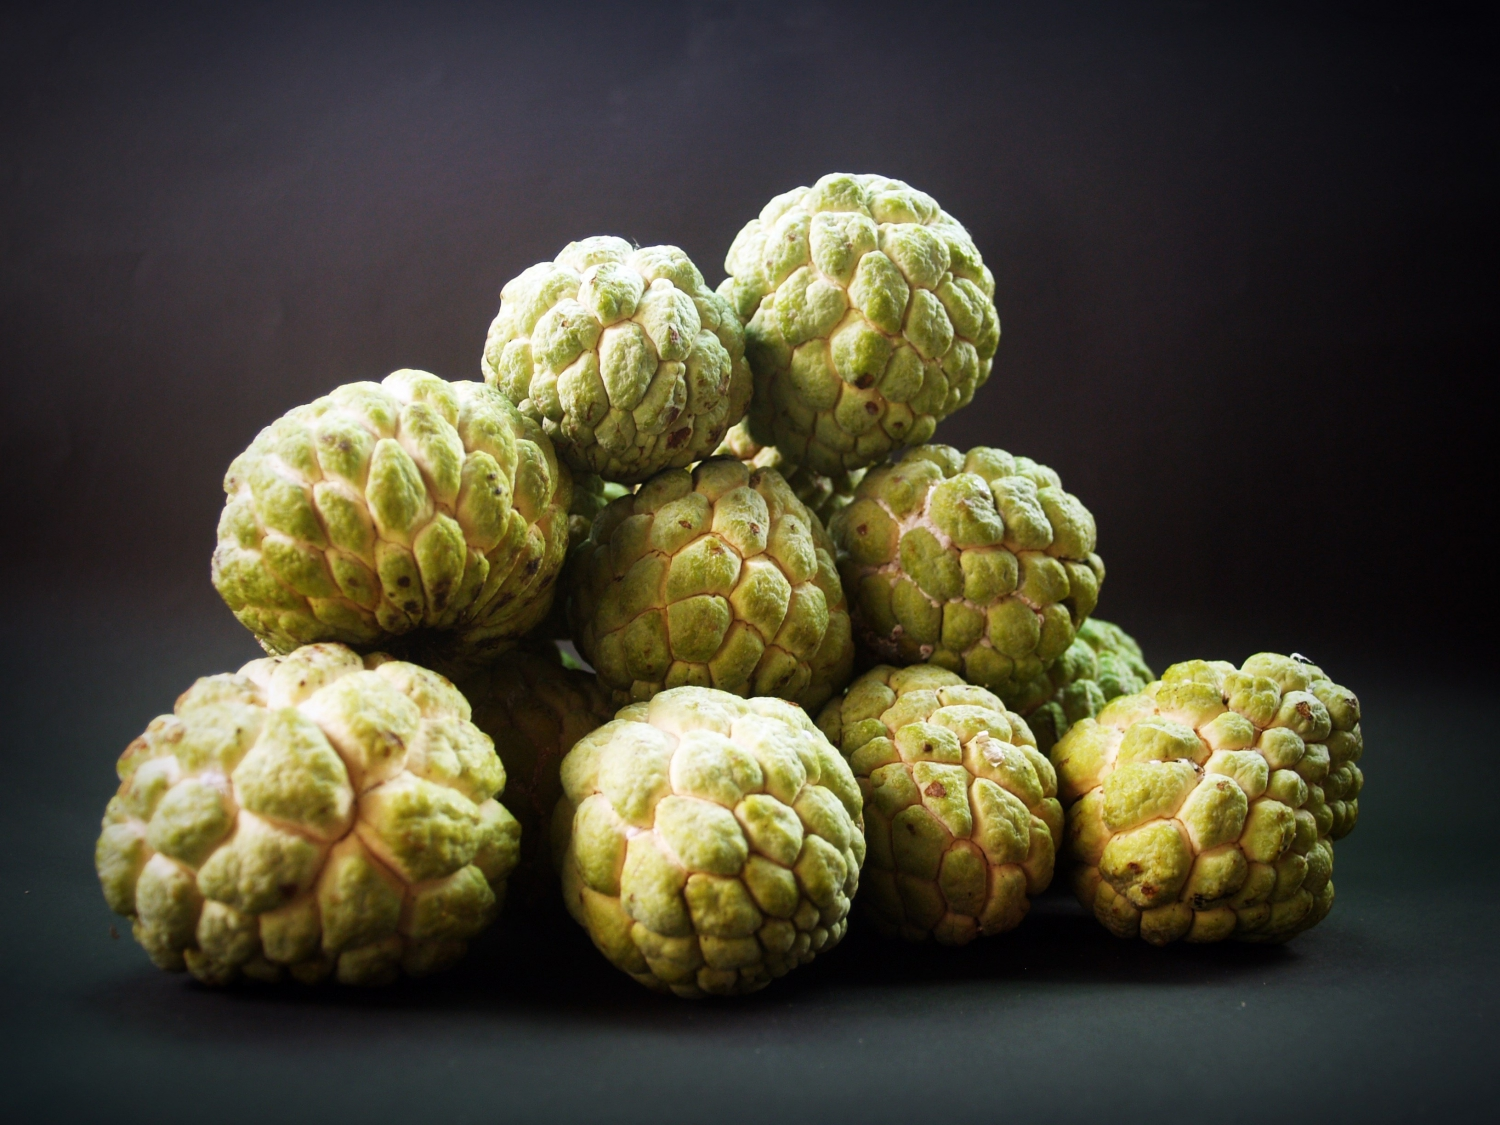 Custard Apple is almost reptilian scale-like skin